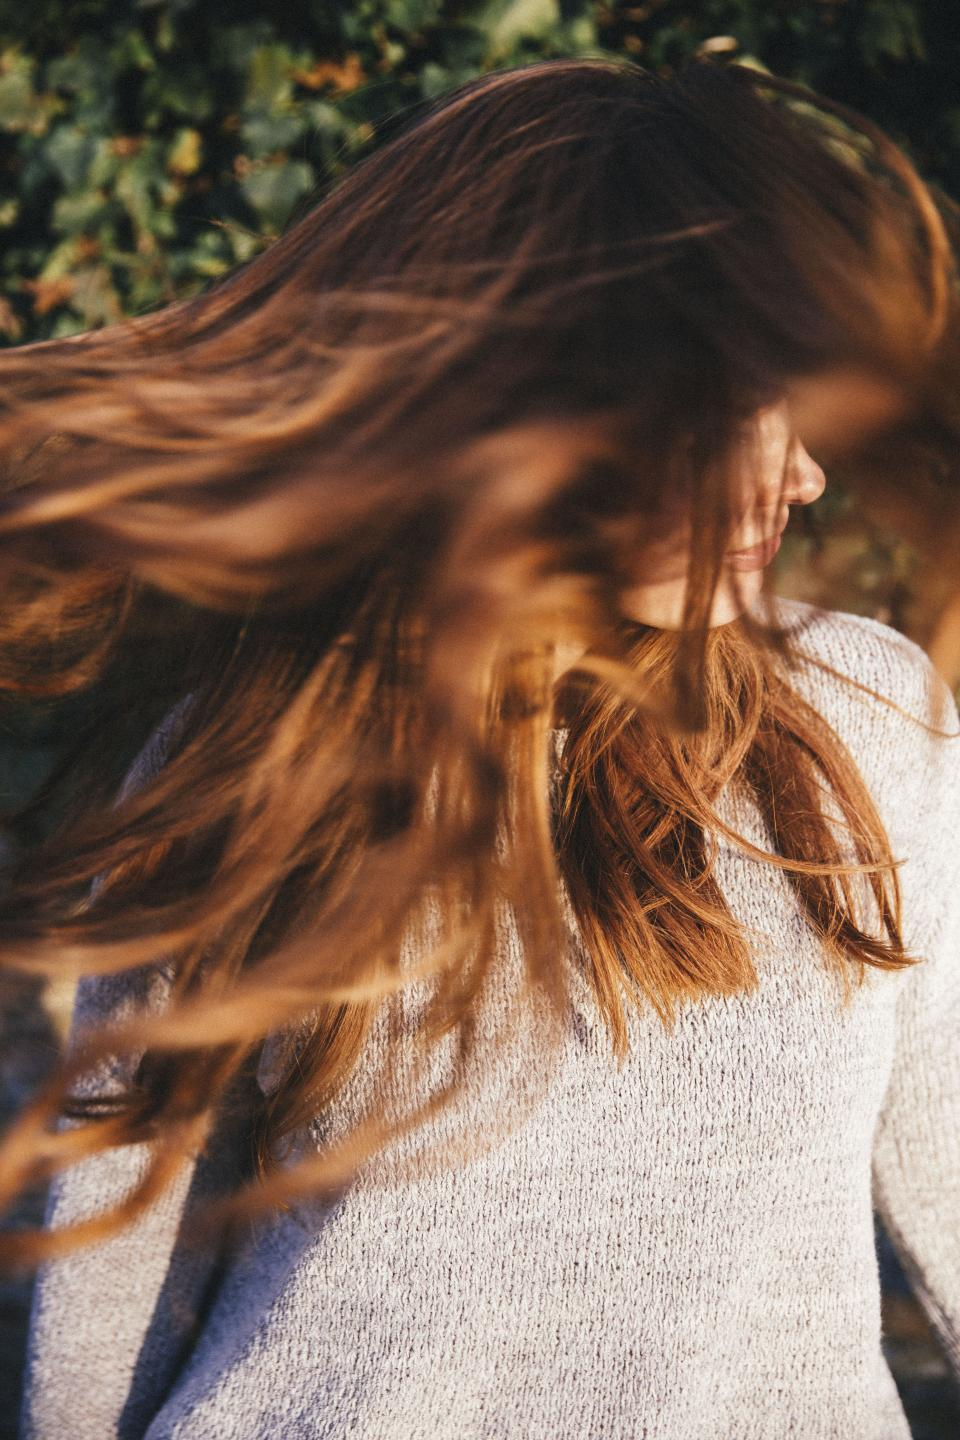 people, woman, hair, sunny, nature, green, leaves